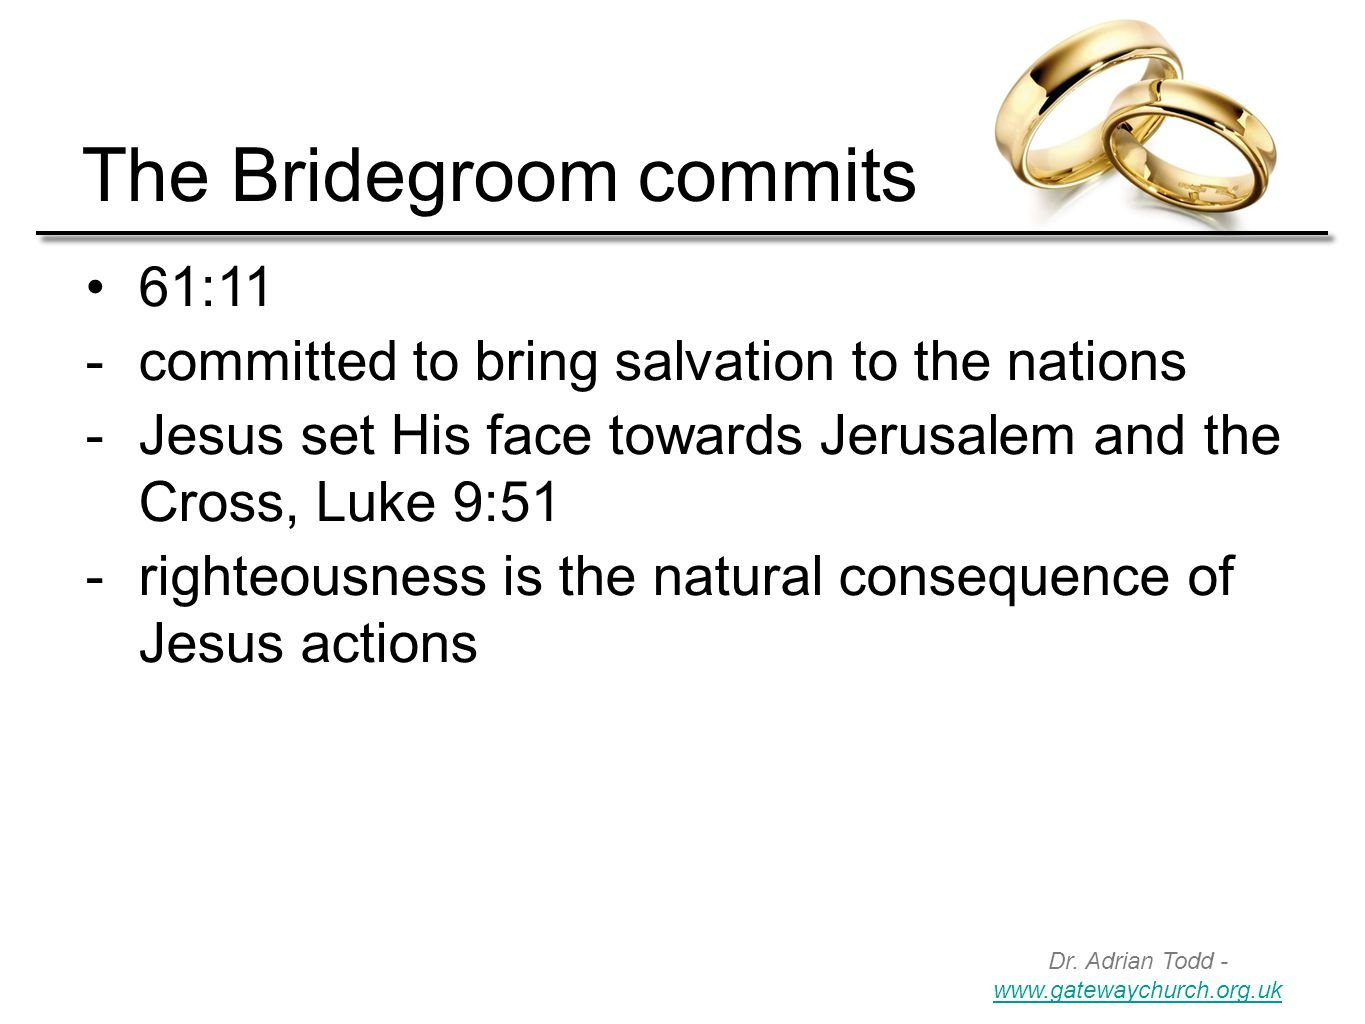 Dr. Adrian Todd - www.gatewaychurch.org.uk www.gatewaychurch.org.uk The Bridegroom commits 61:11  committed to bring salvation to the nations  Jesus